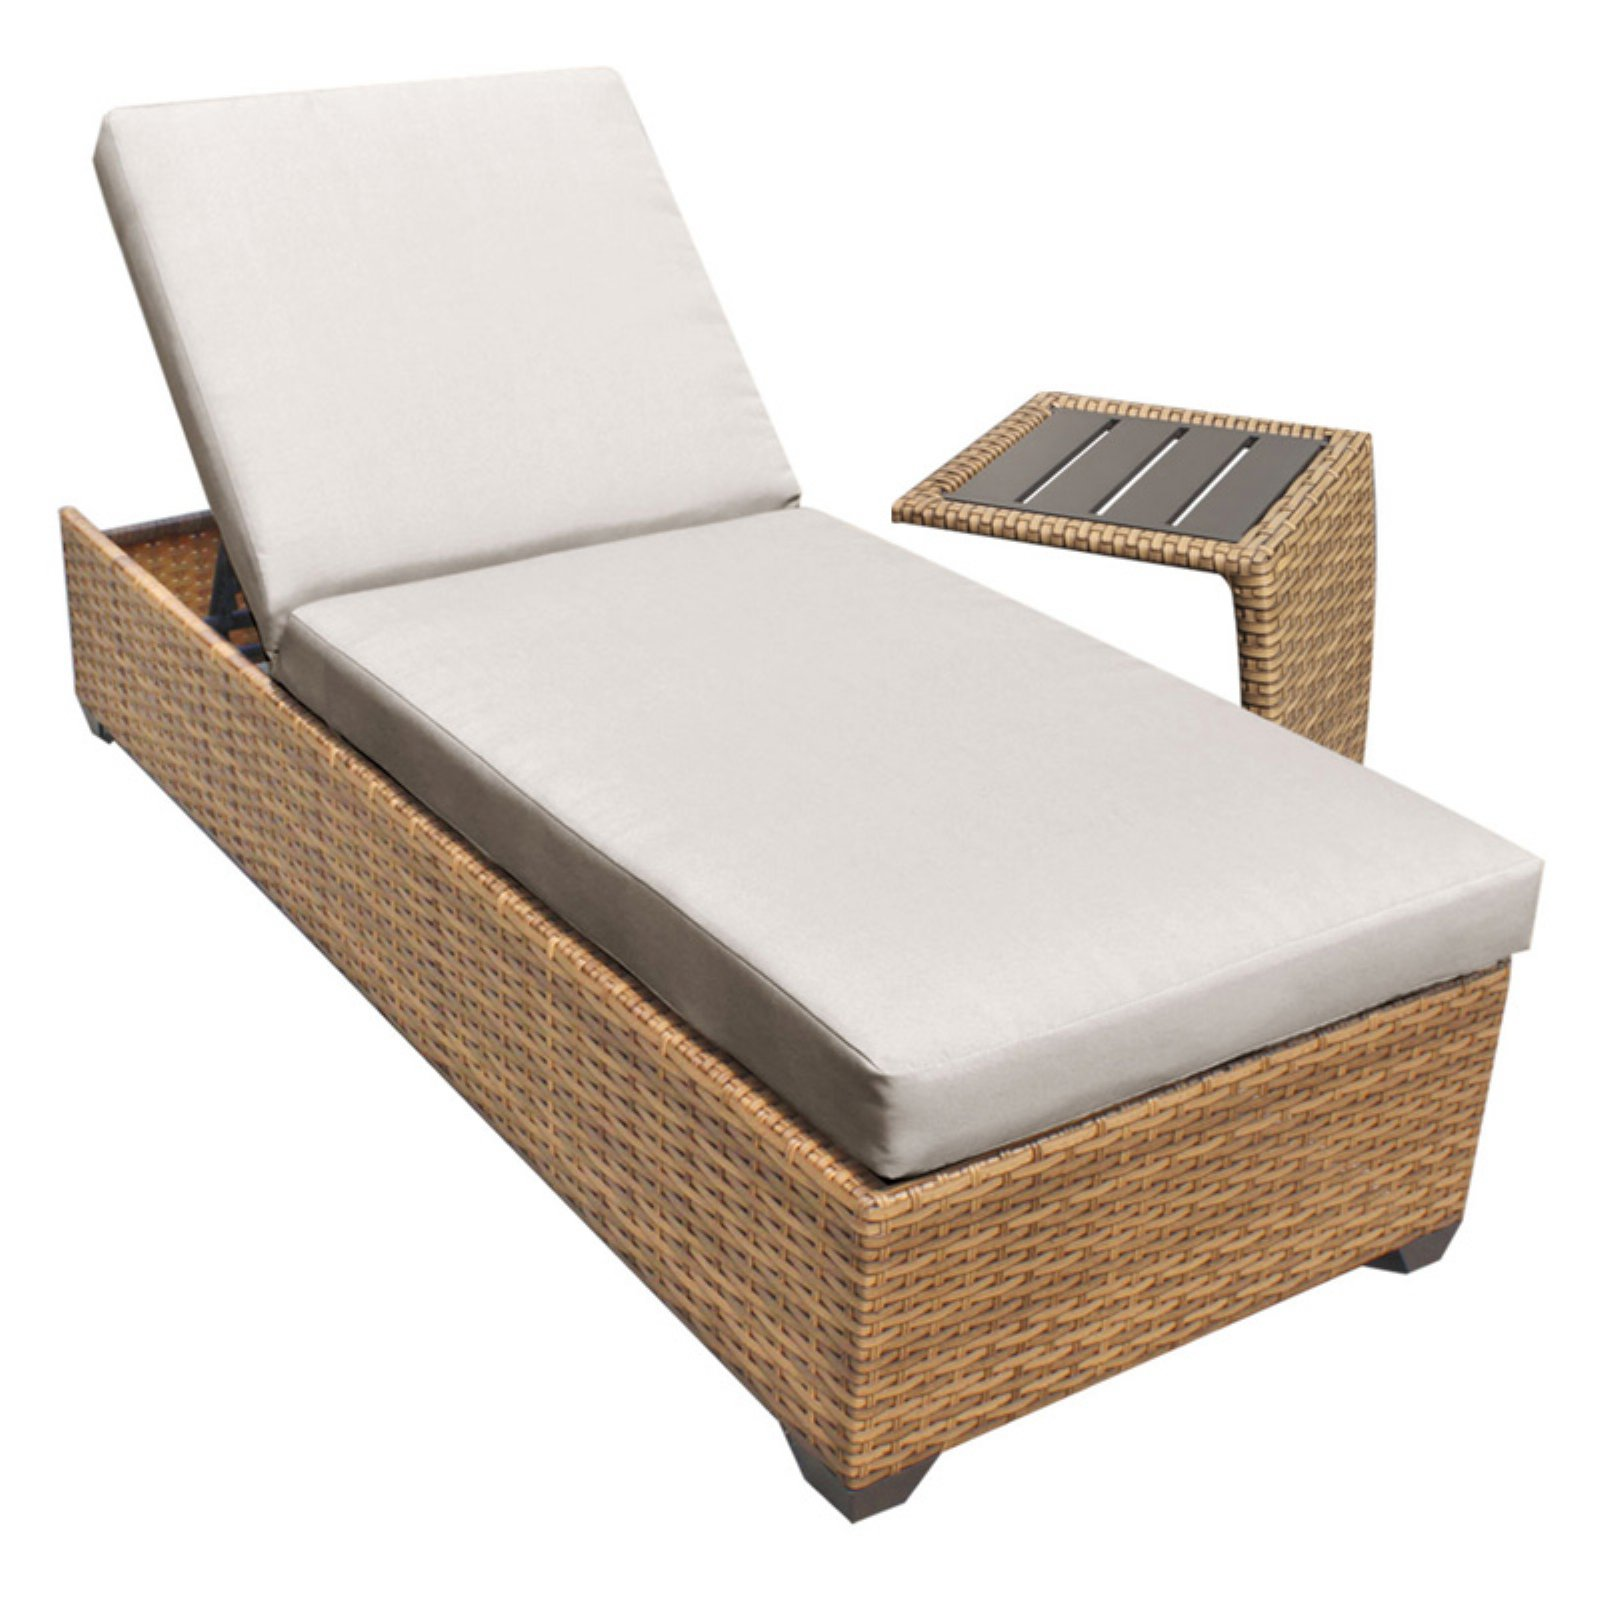 TK Classics Laguna Outdoor Chaise Lounge with Side Table - Set of 2 Cushion Covers